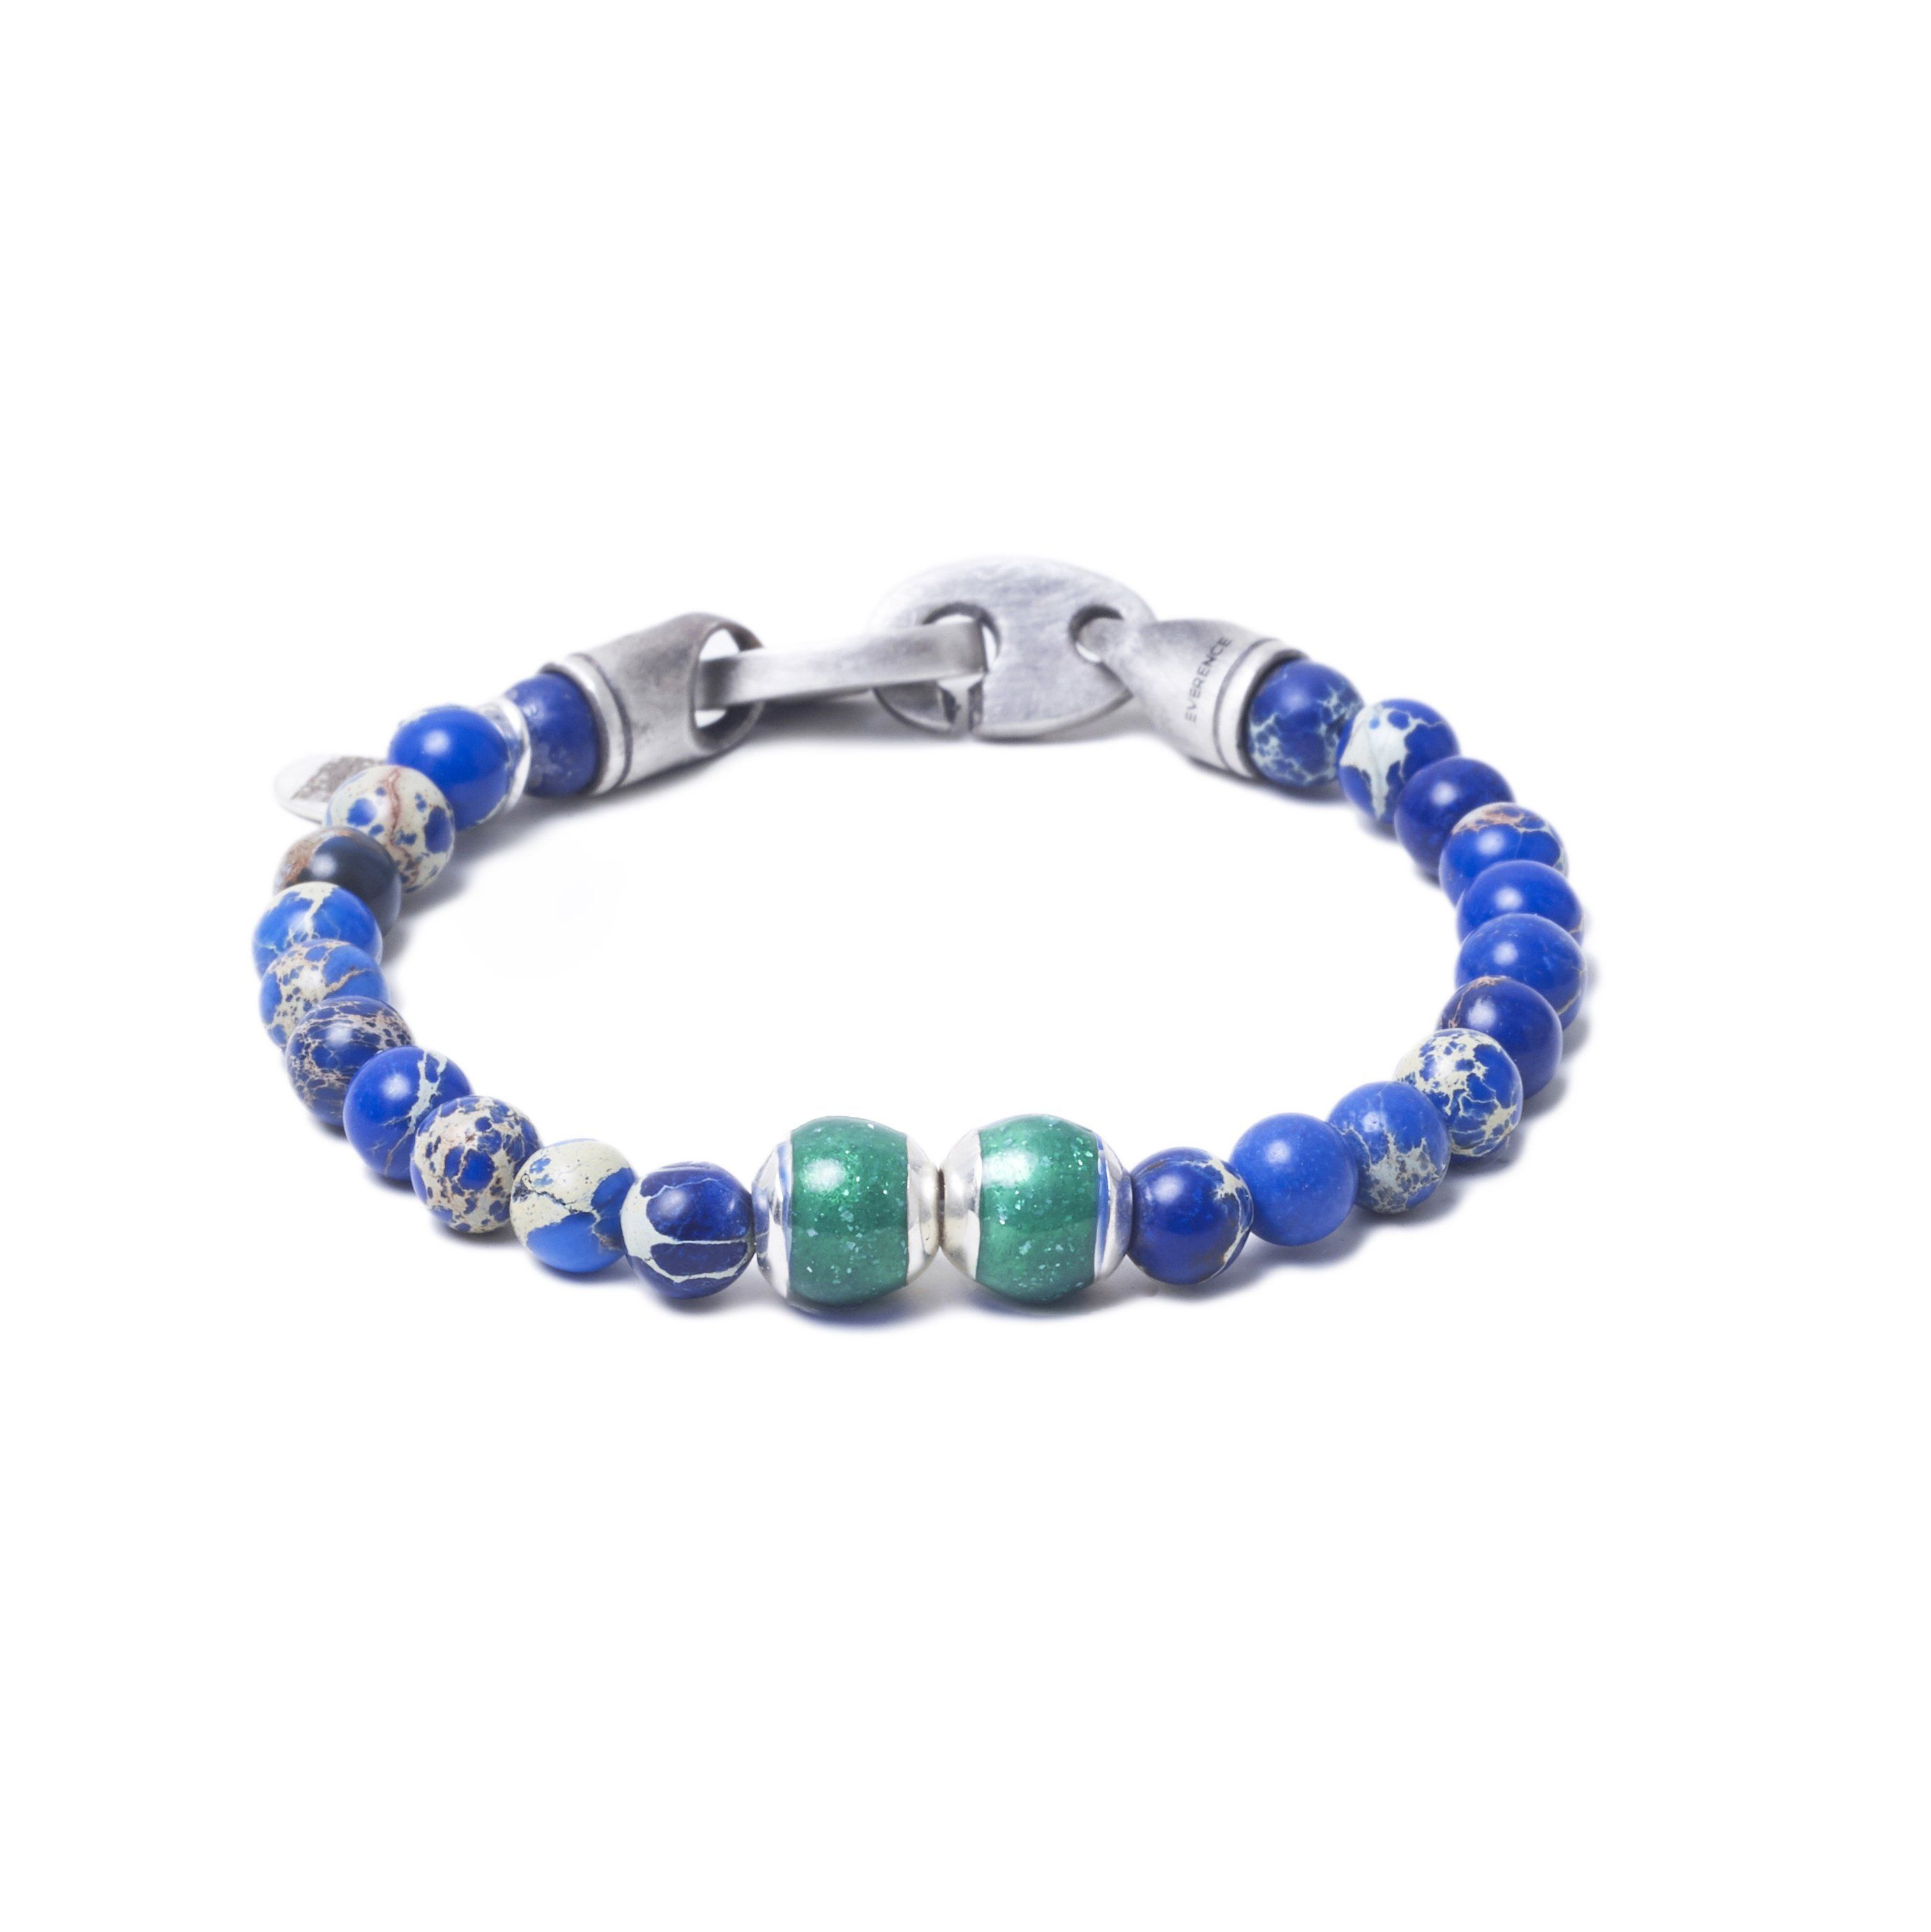 Blue Sea Jasper, Two Everence Beads everence.life Green Brummel Hook 7